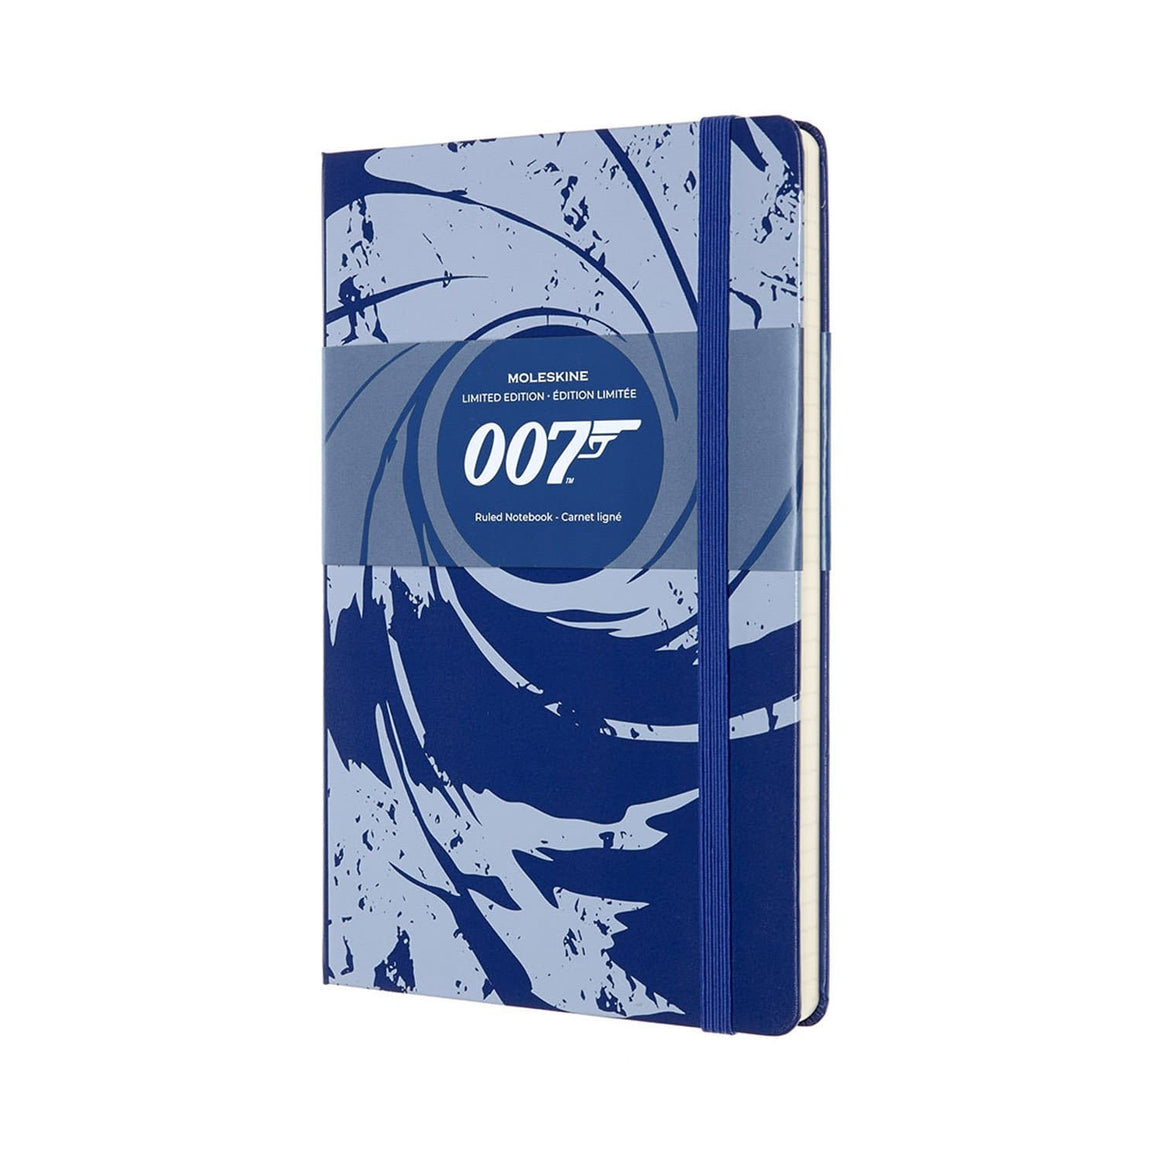 007 Blue Gun Barrel Notebook By Moleskine l Official James Bond 007 Store